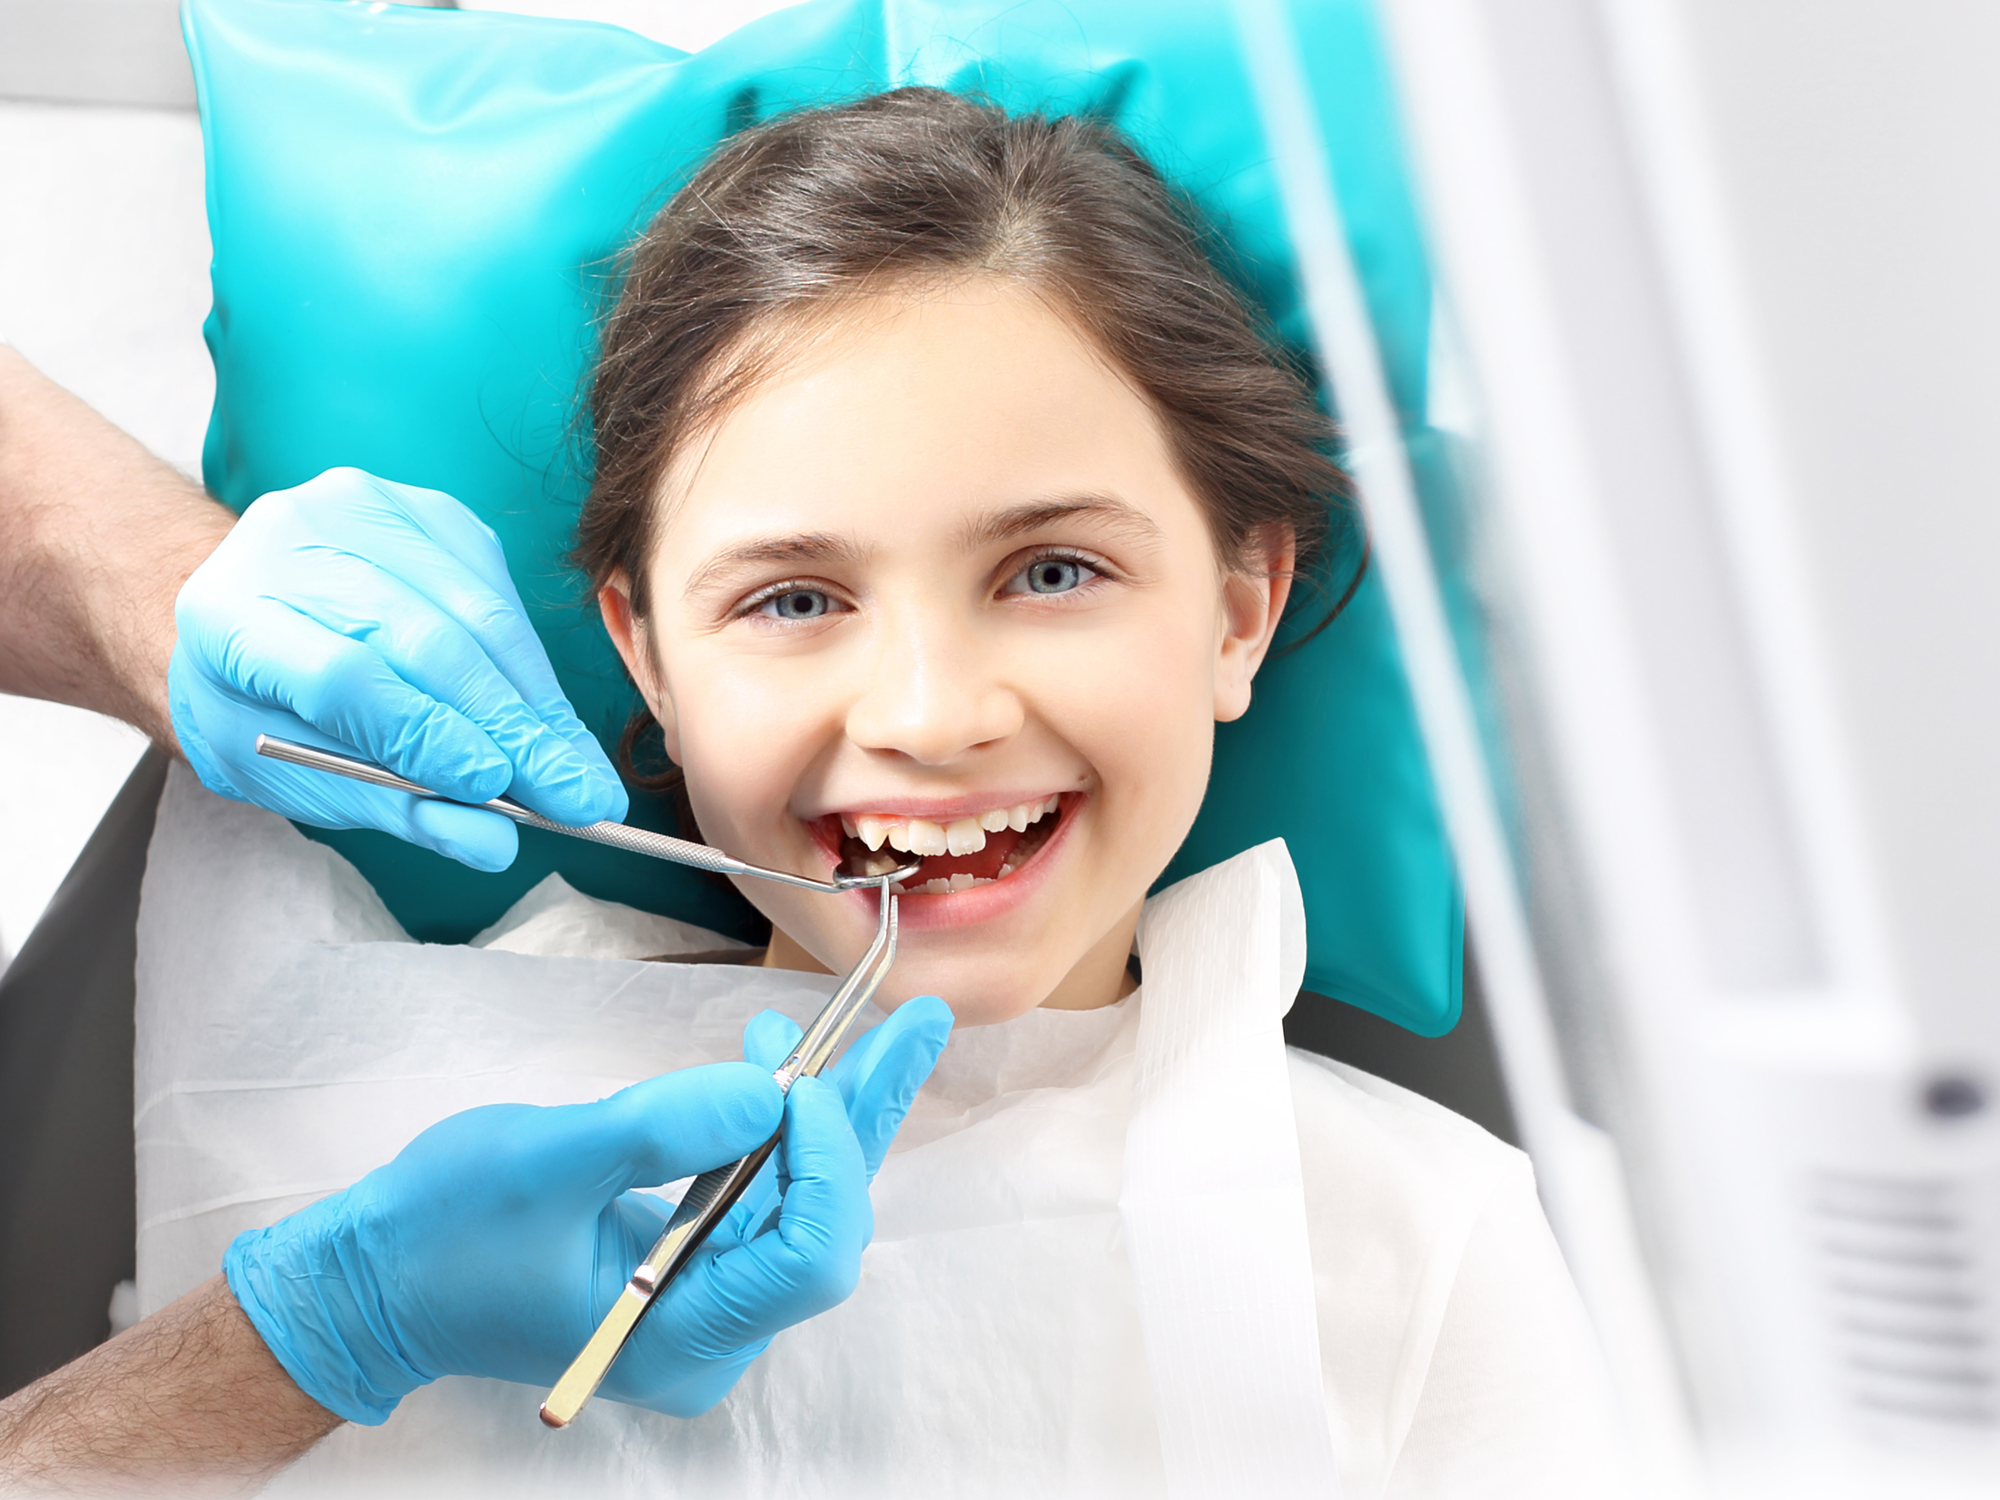 At What Age Are Dental Sealants Most Effective?